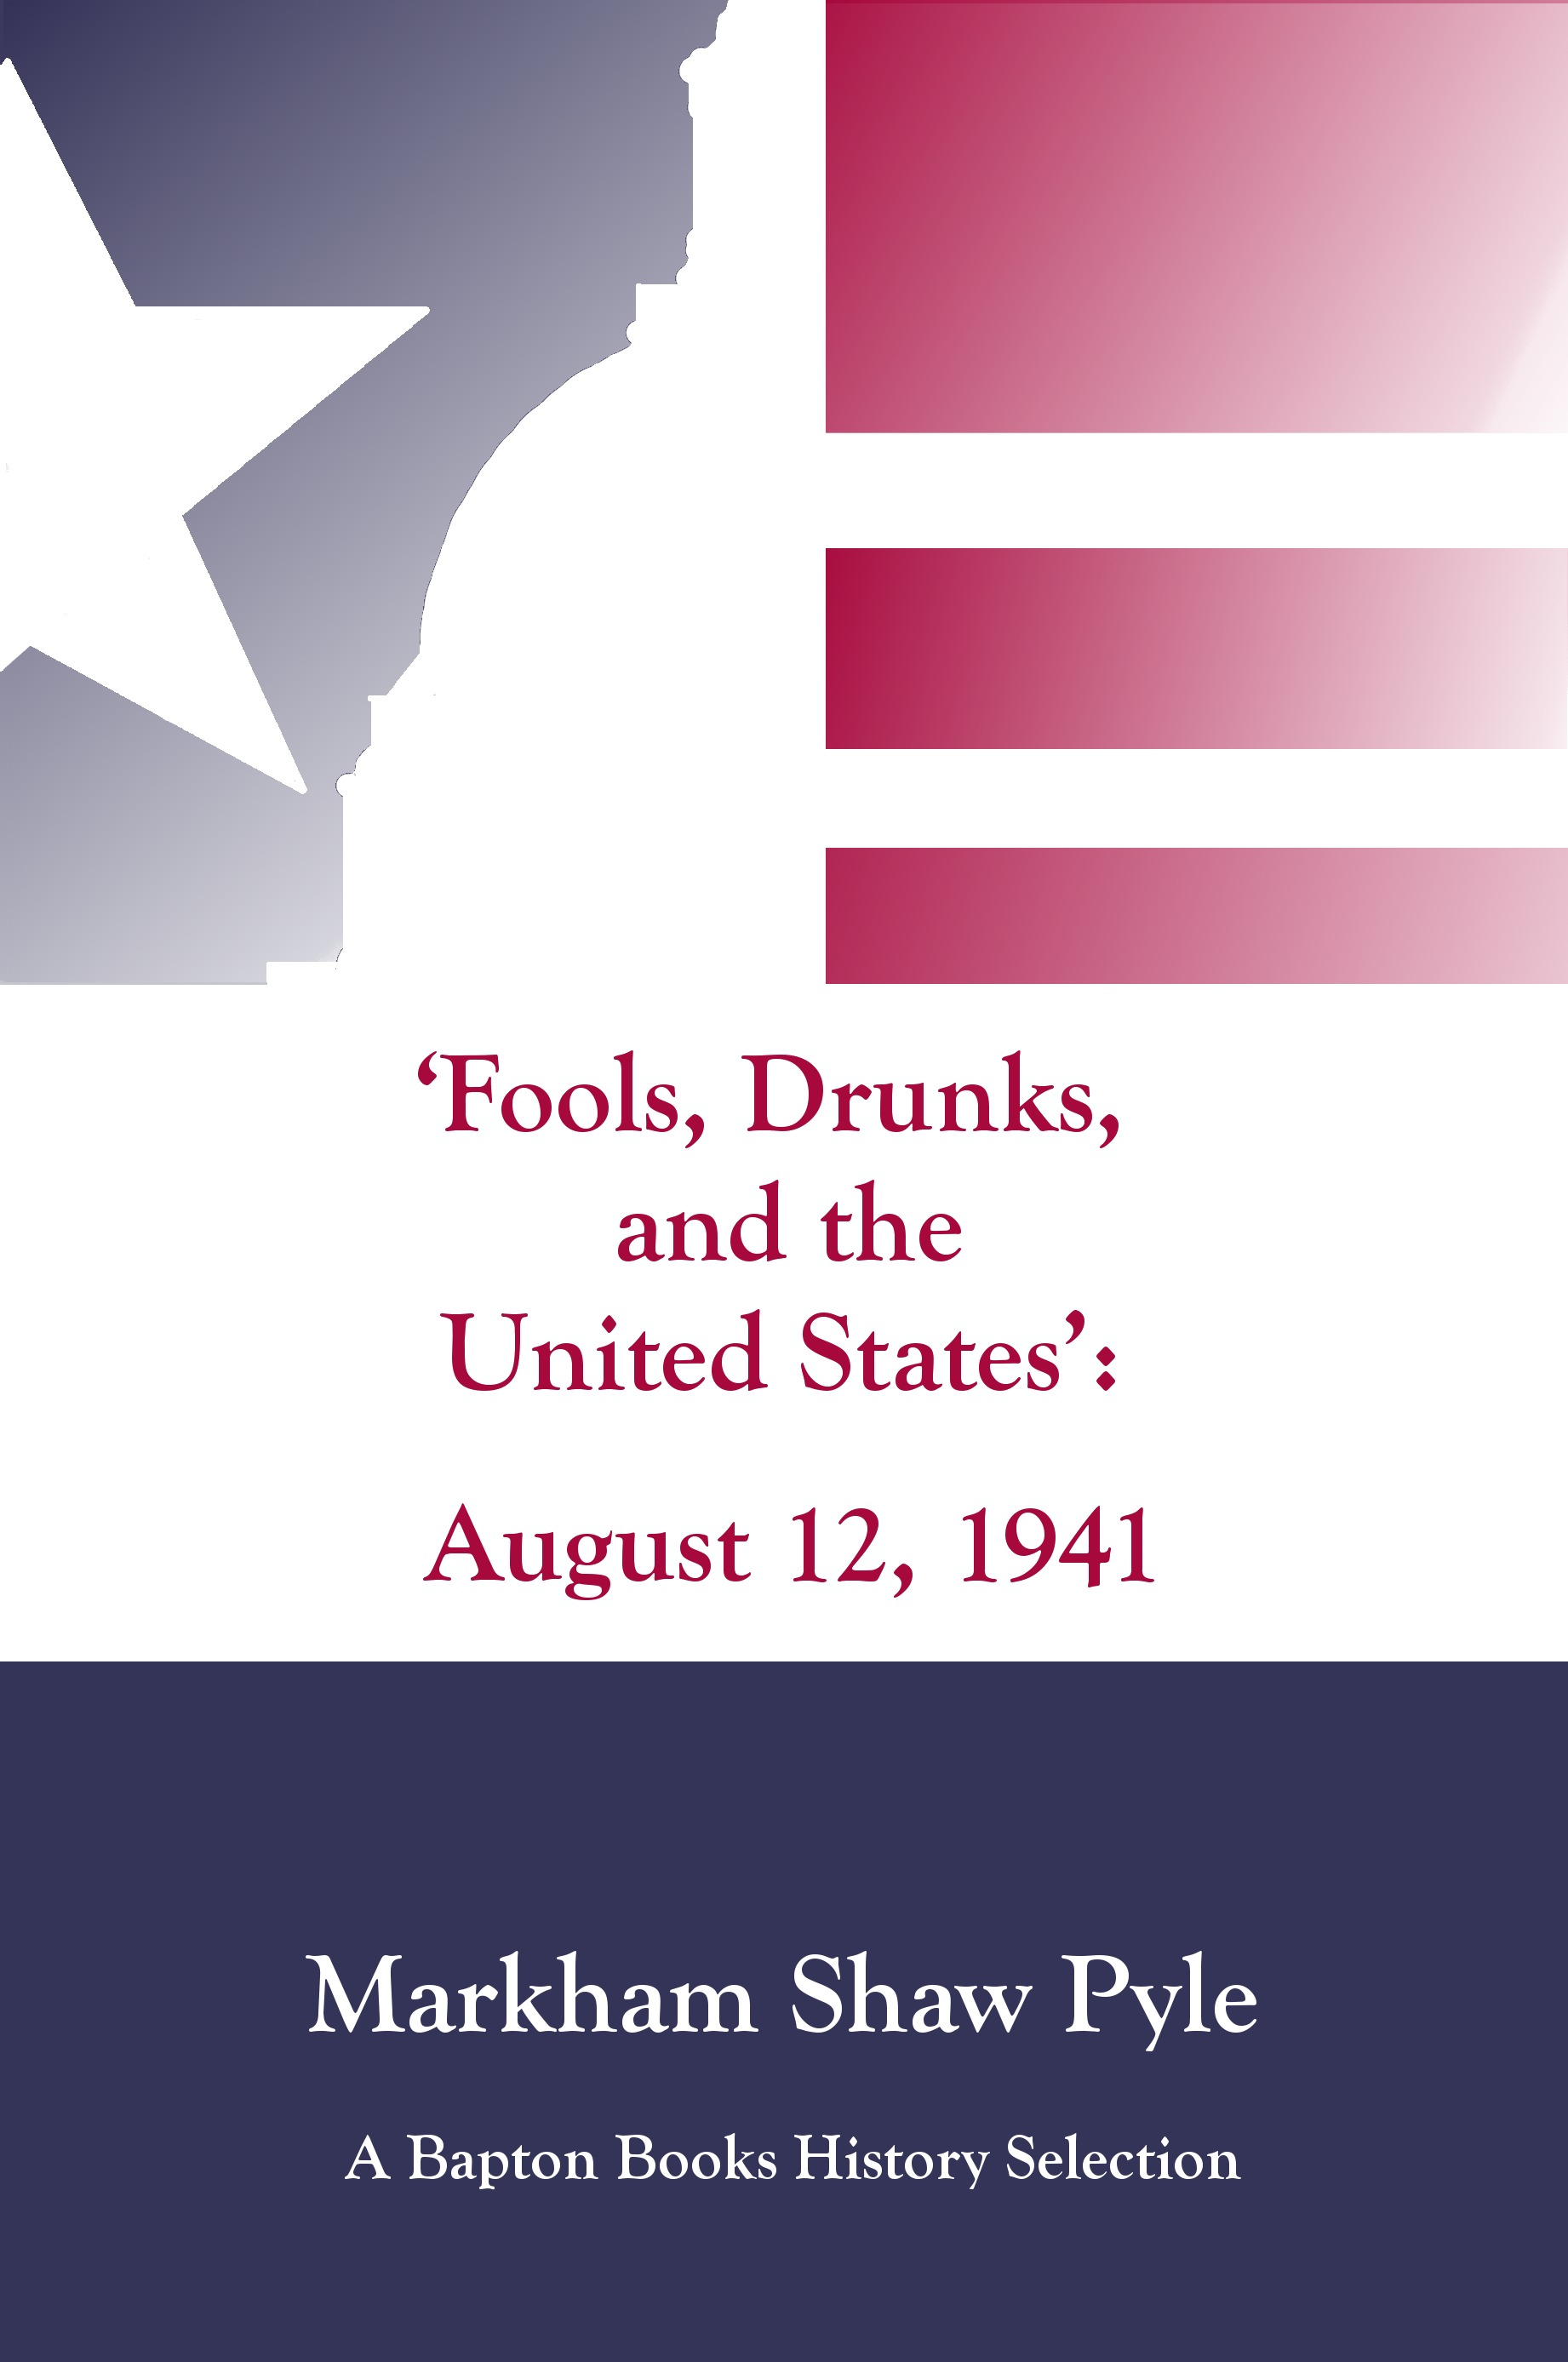 """Fools, Drunks, and the United States"": August 12, 1941"